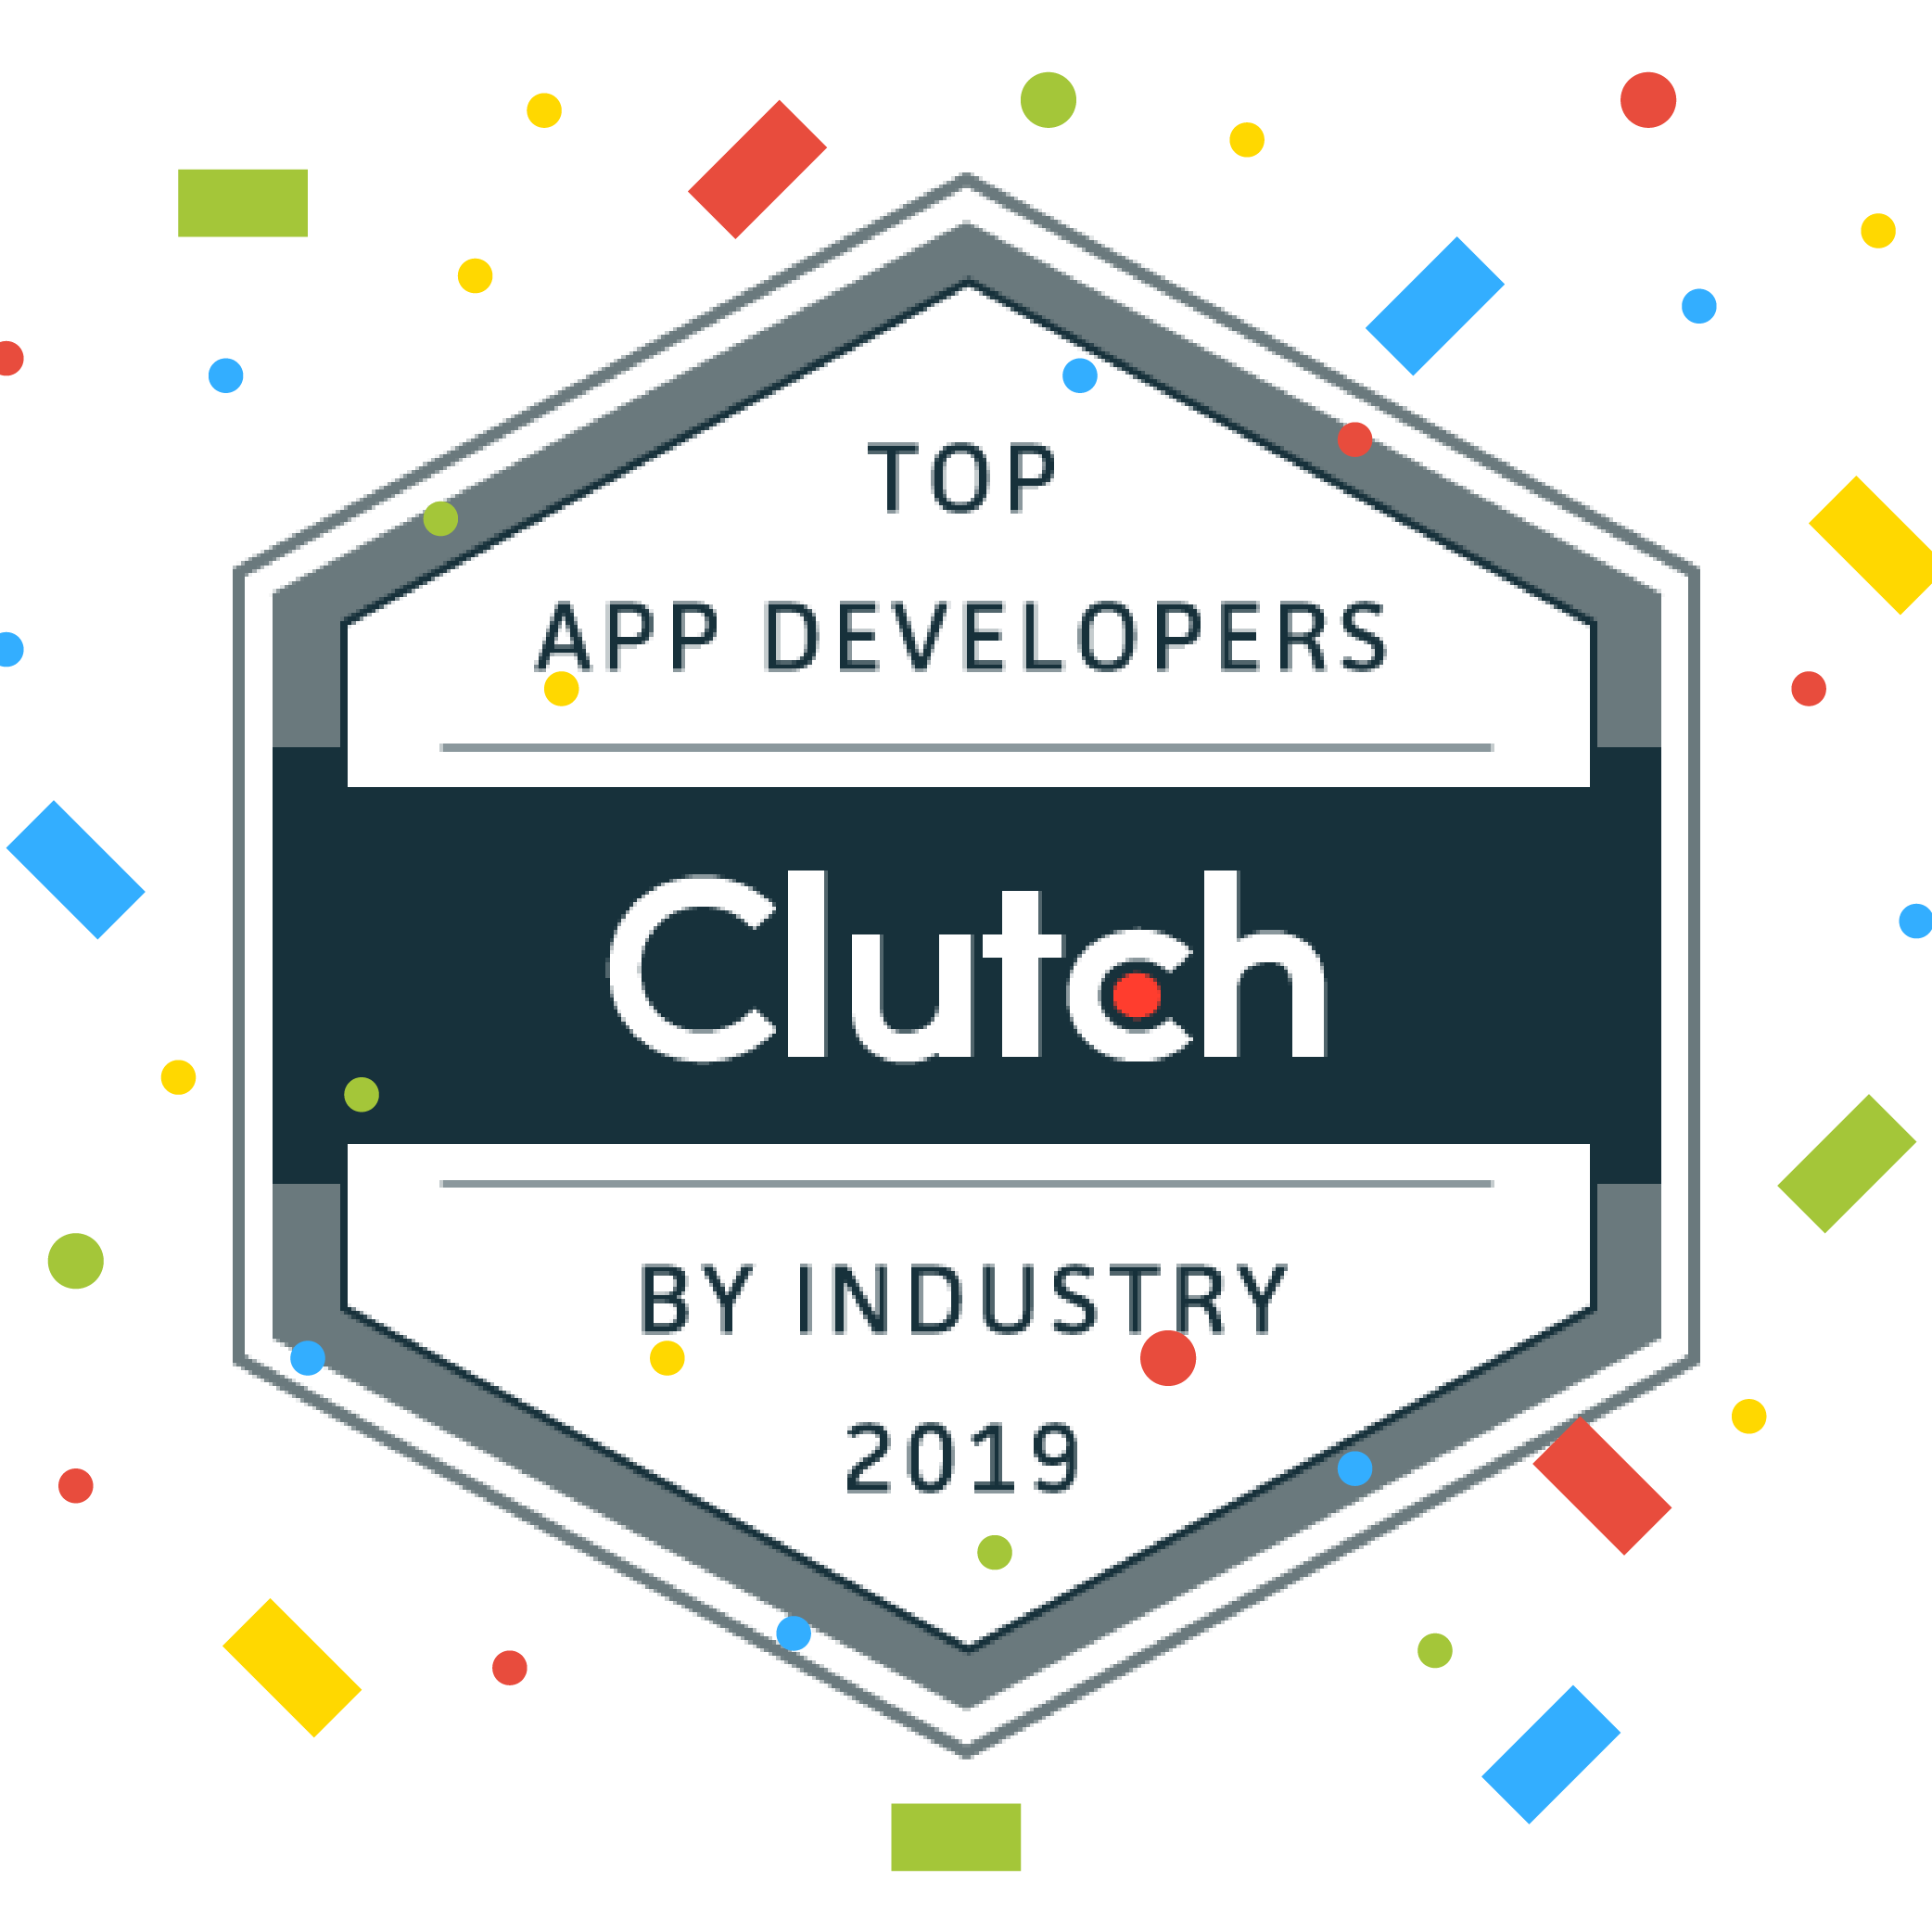 Cleveroad named one of the best mobile app development firms for startups